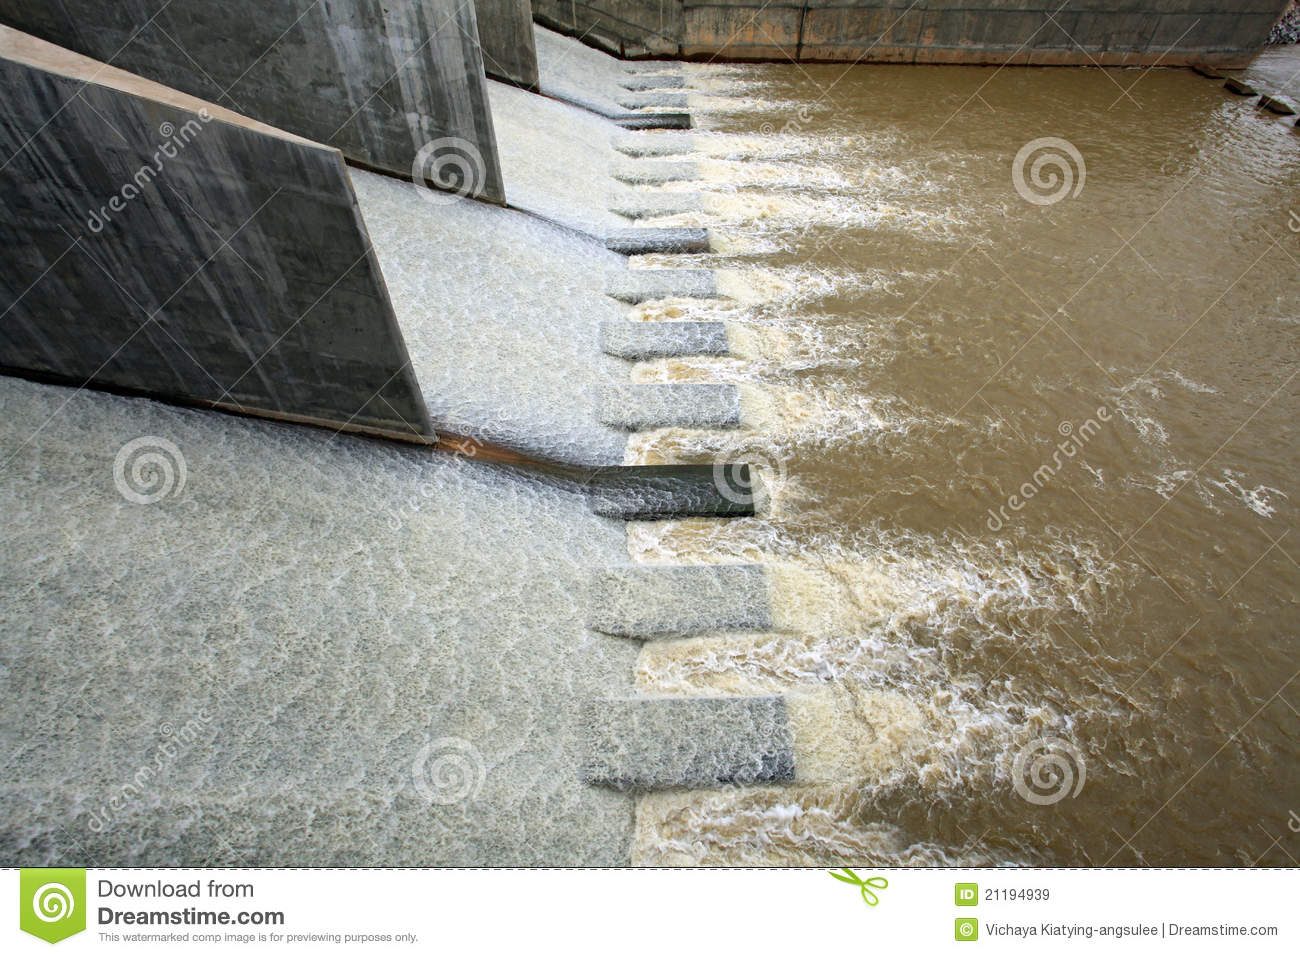 Water from dam